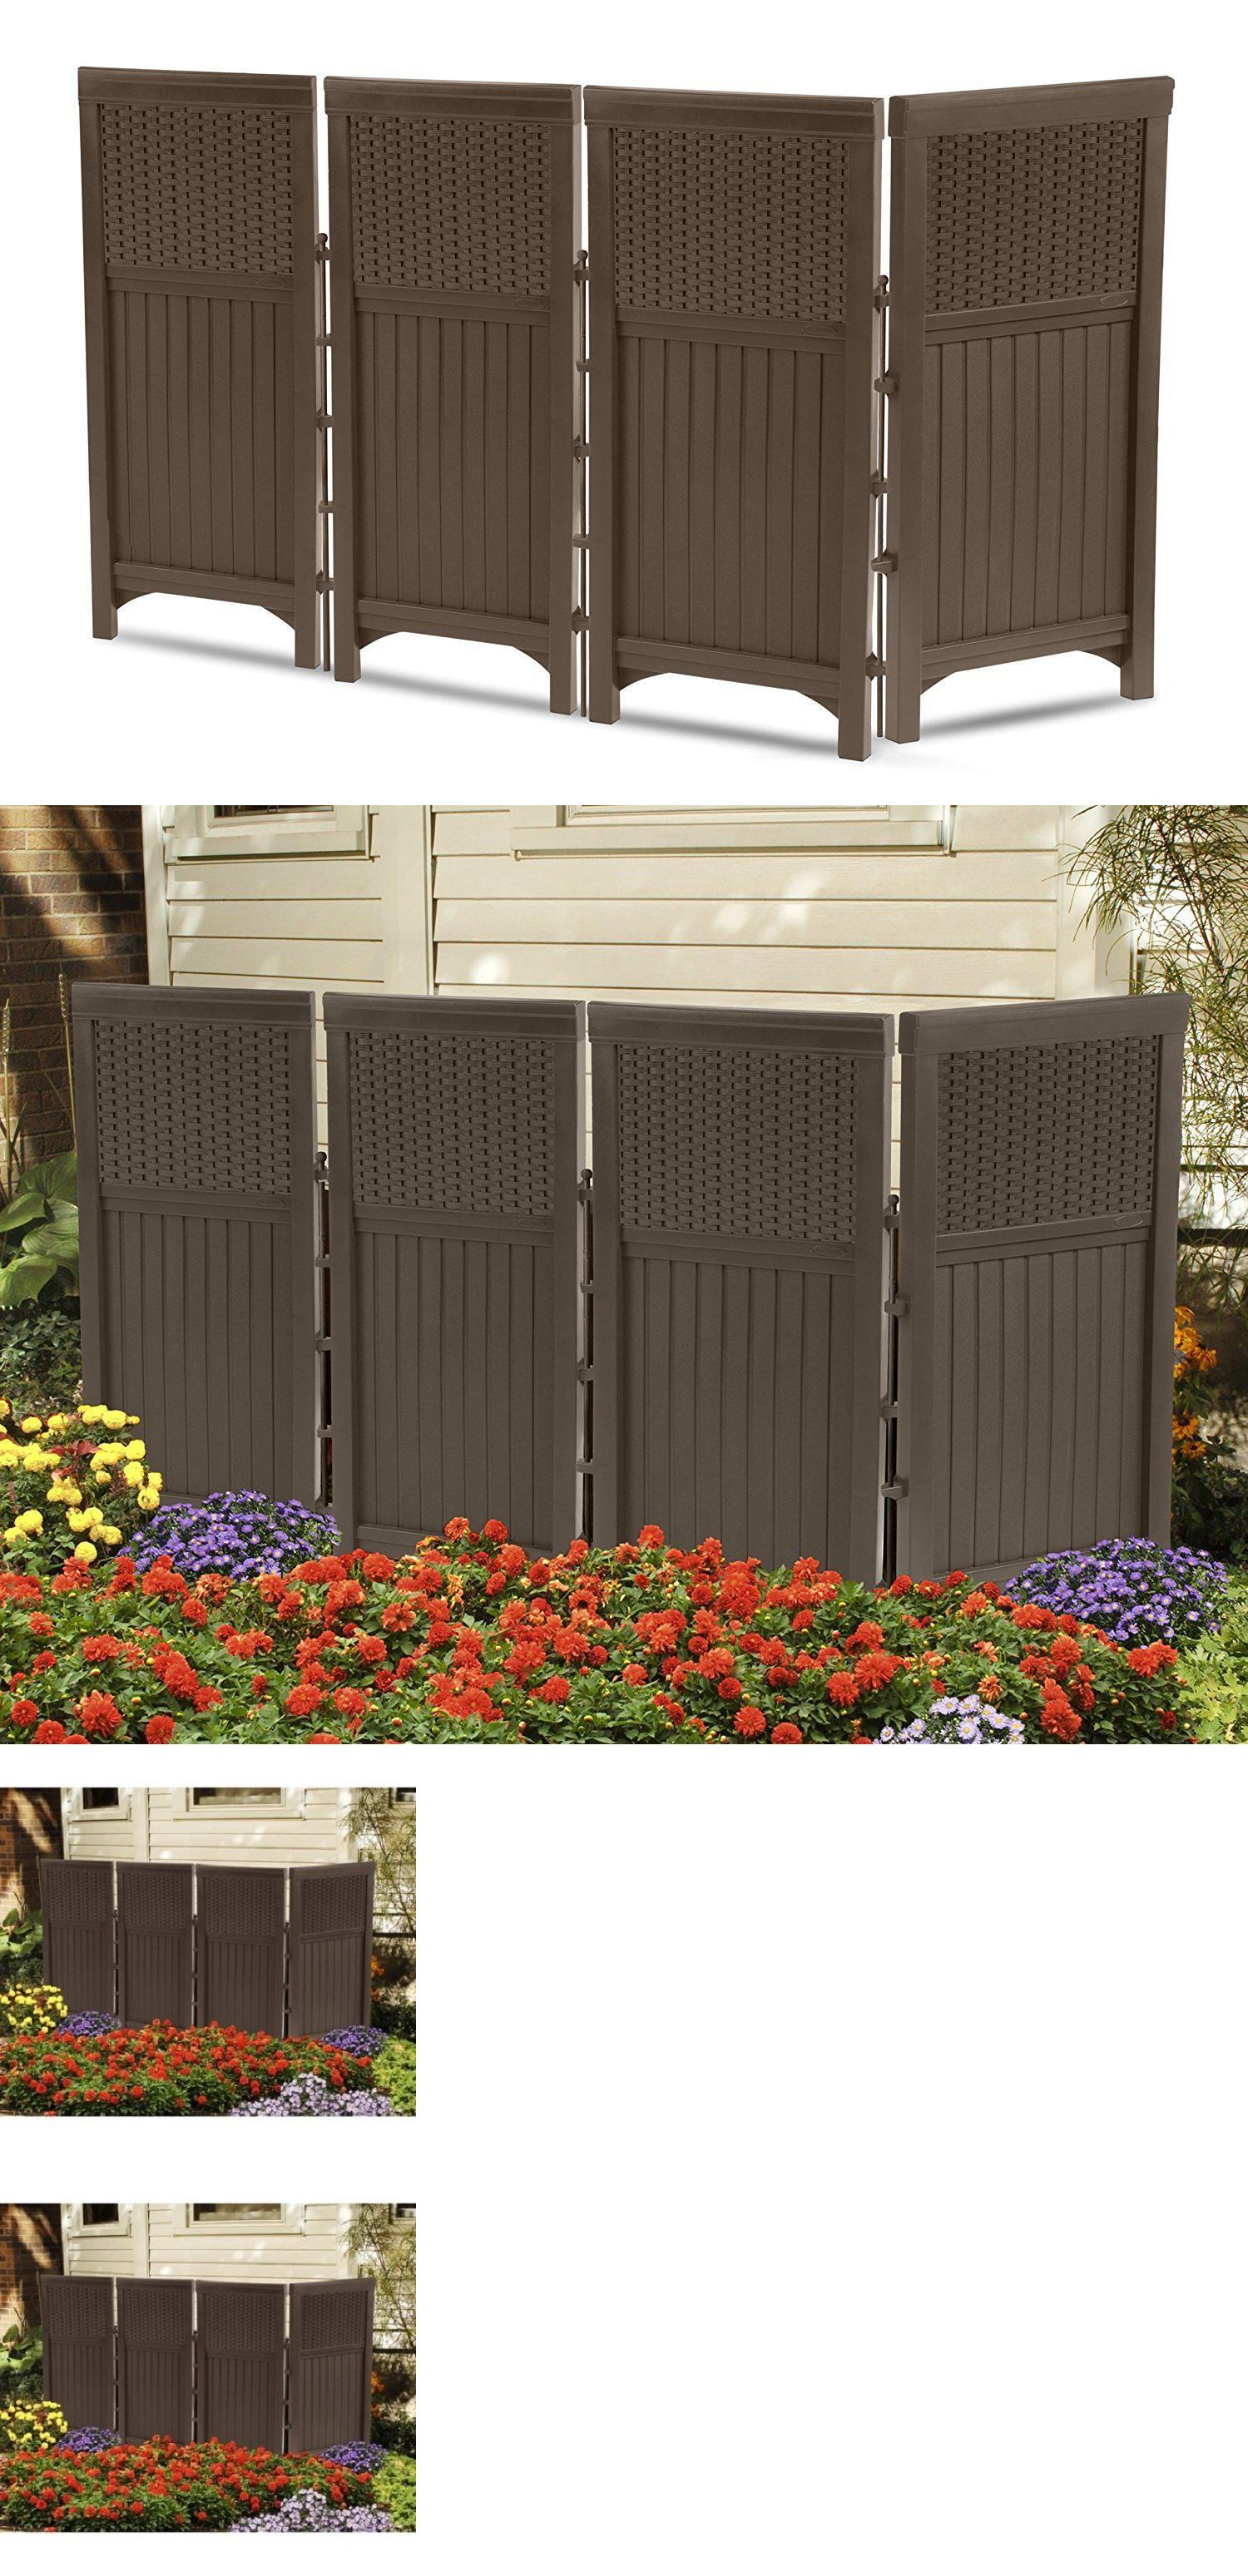 Privacy Screens Windscreens 180991: Outdoor Screen Panel Set Resin Wicker  Garden Portable Privacy Fence